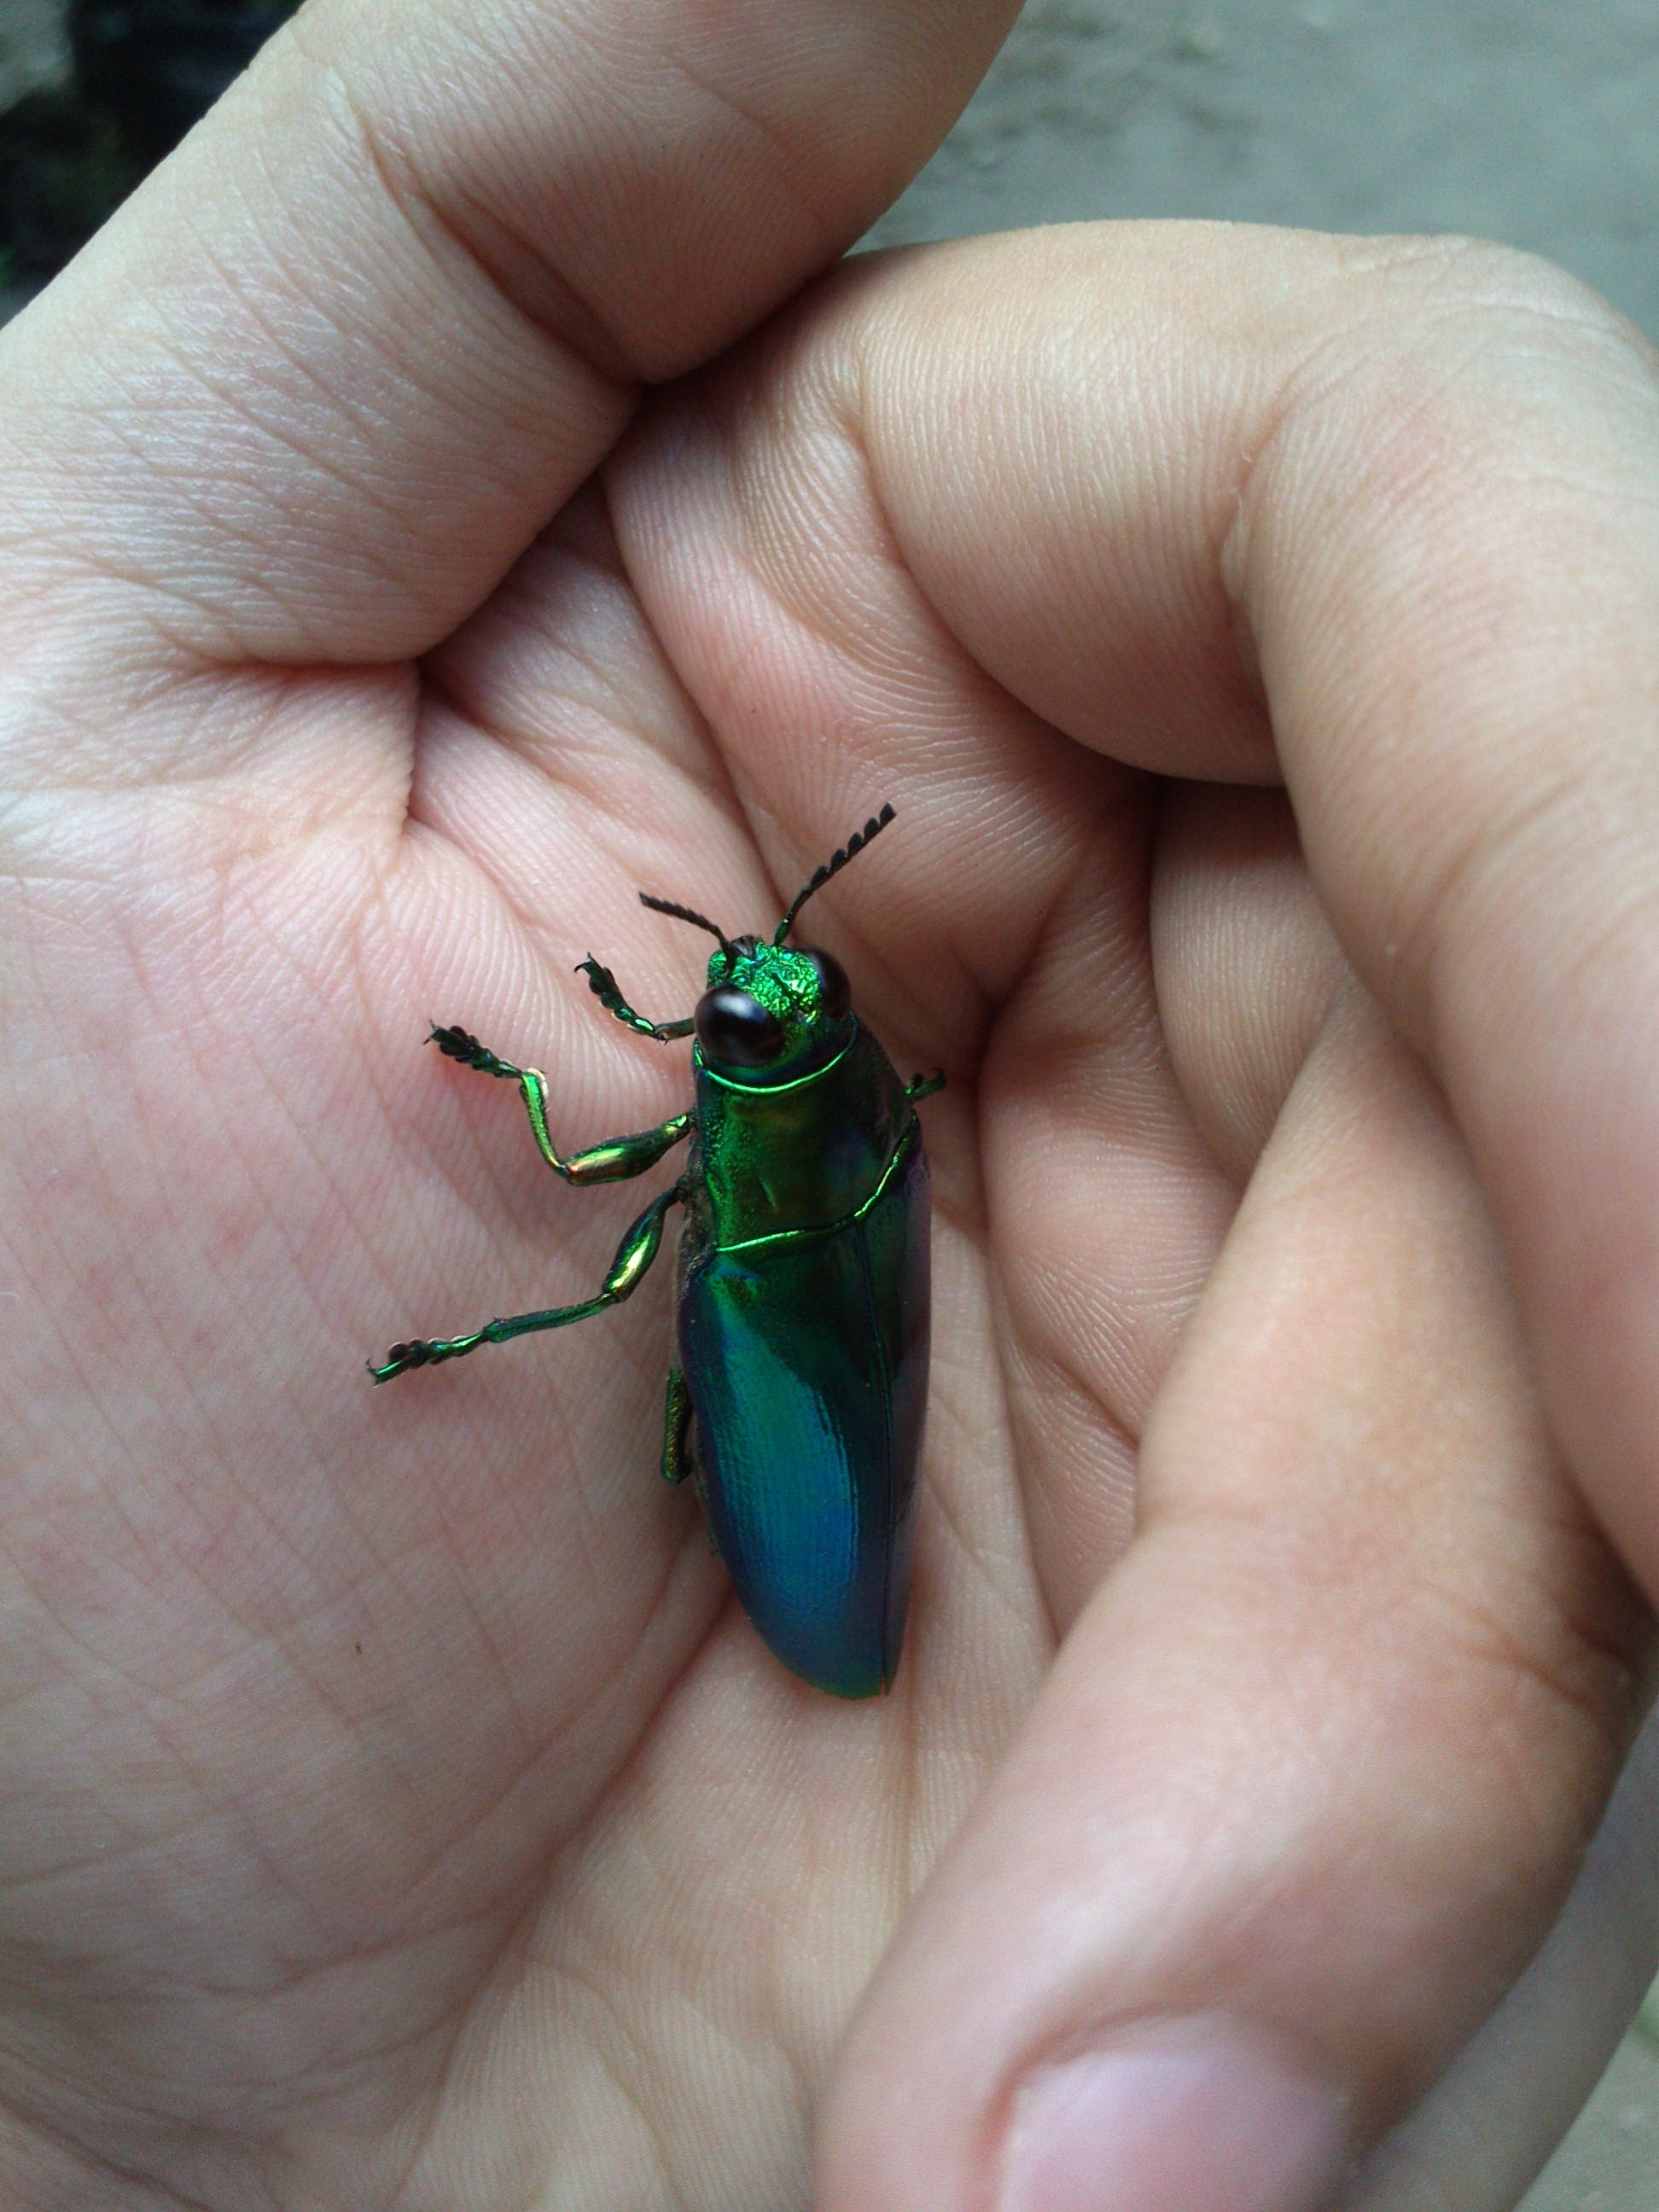 Green Metallic Beetle on Hand